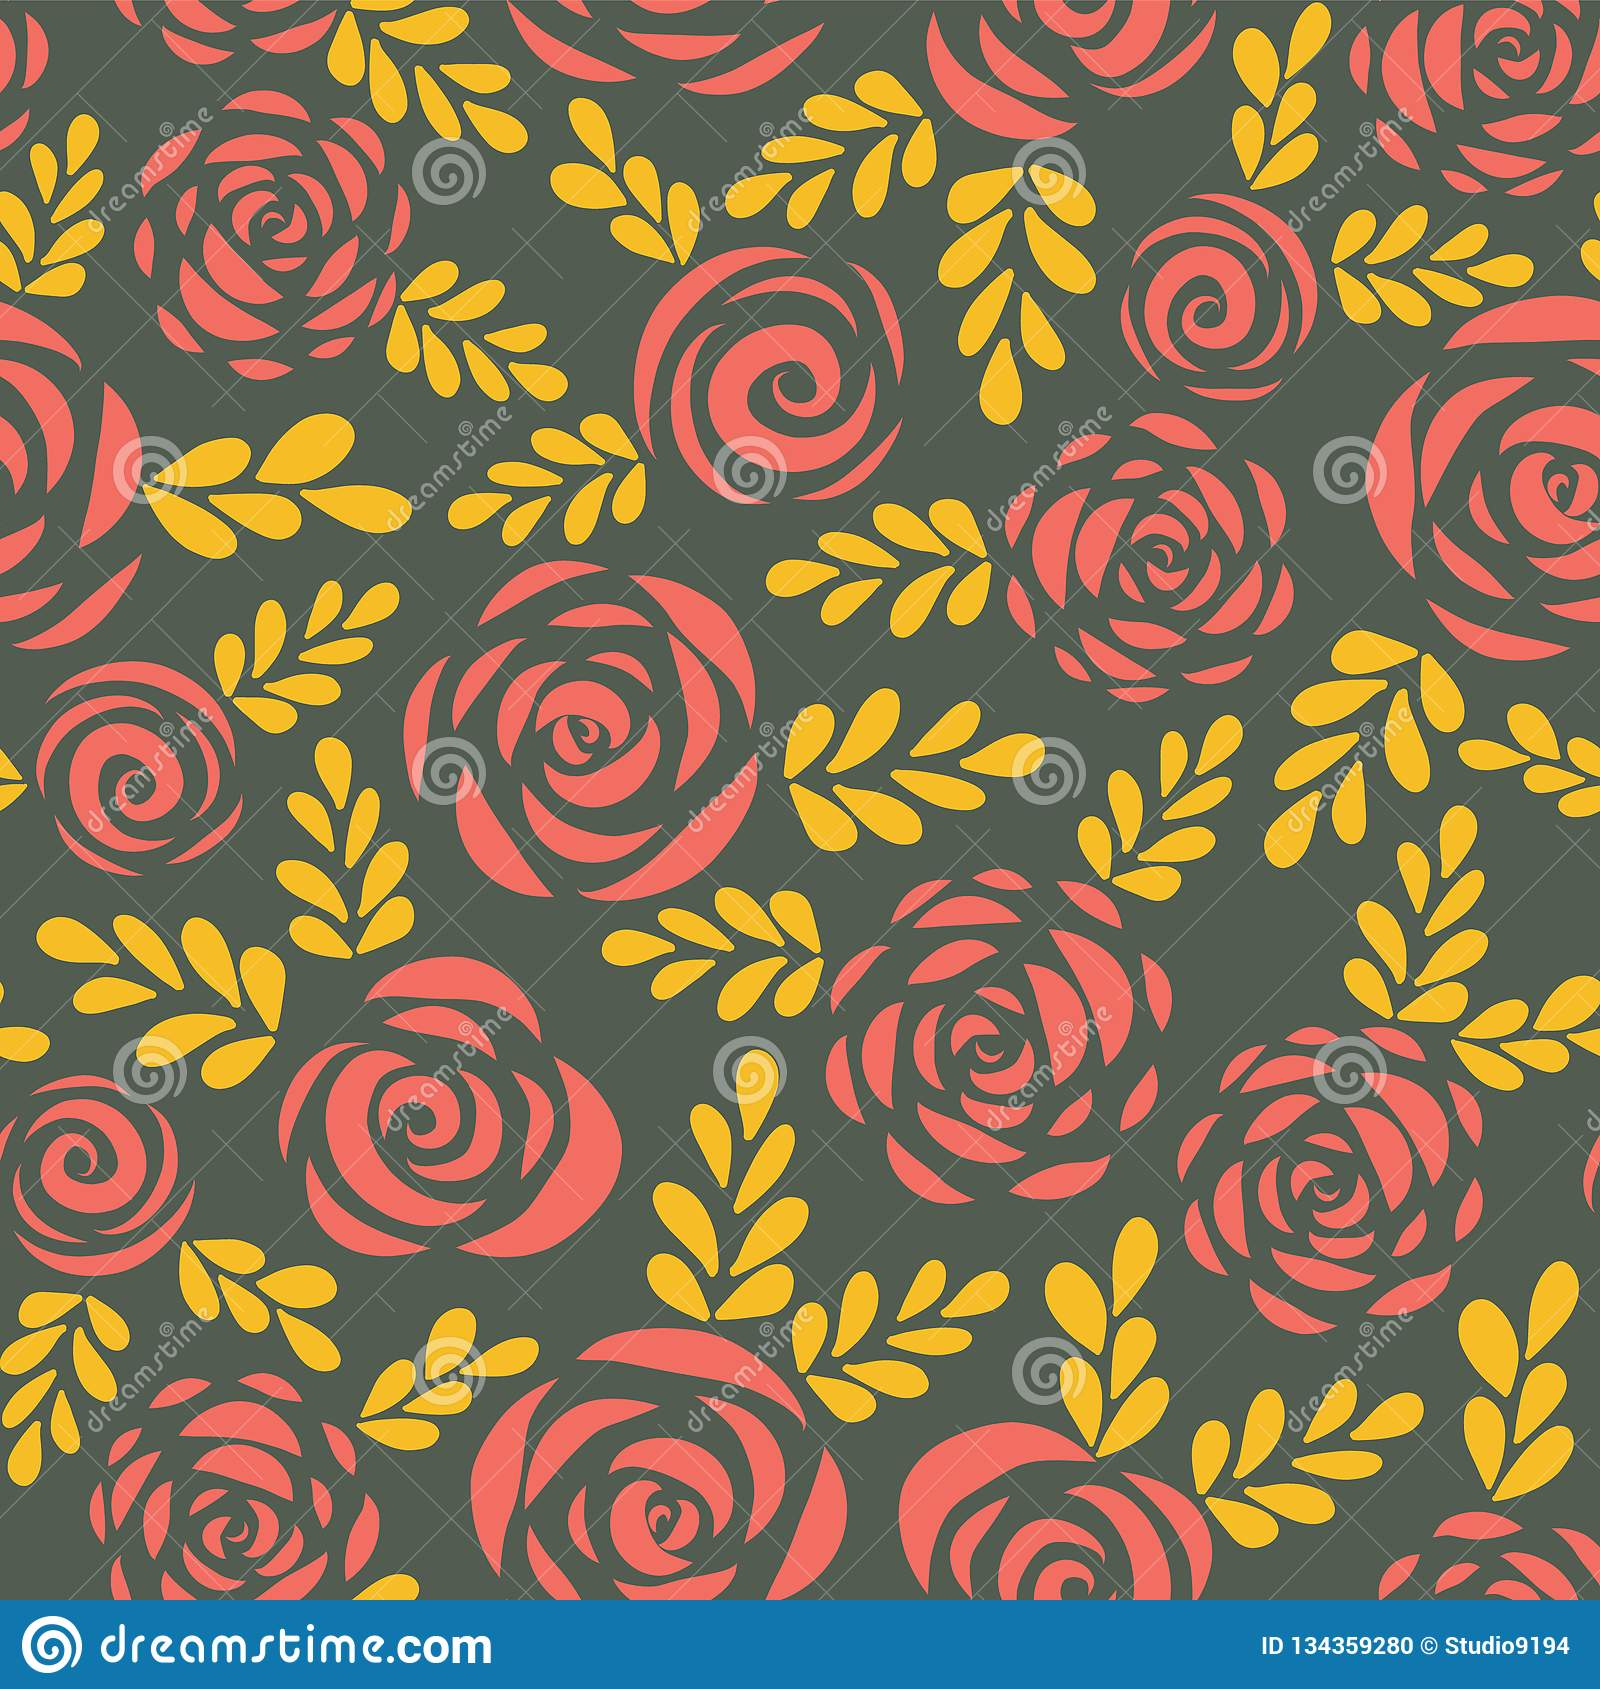 Modern abstract flat roses and leaves red gold seamless vector background . Floral silhouettes. Flower pattern for Valentines,